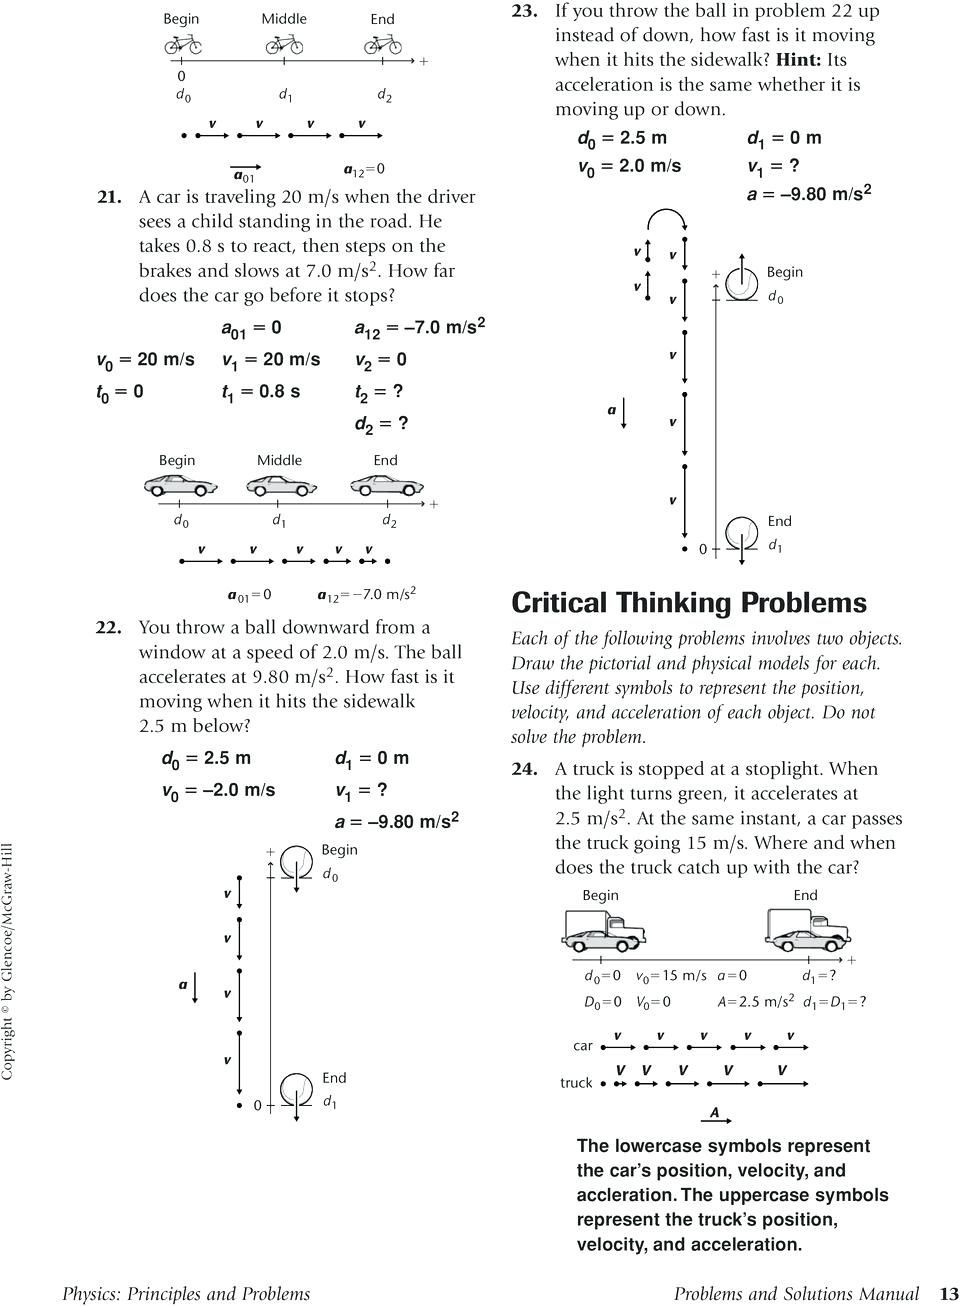 Scientific Notation Word Problems Worksheet 42 Clever Scientific Notation Worksheet Ideas S